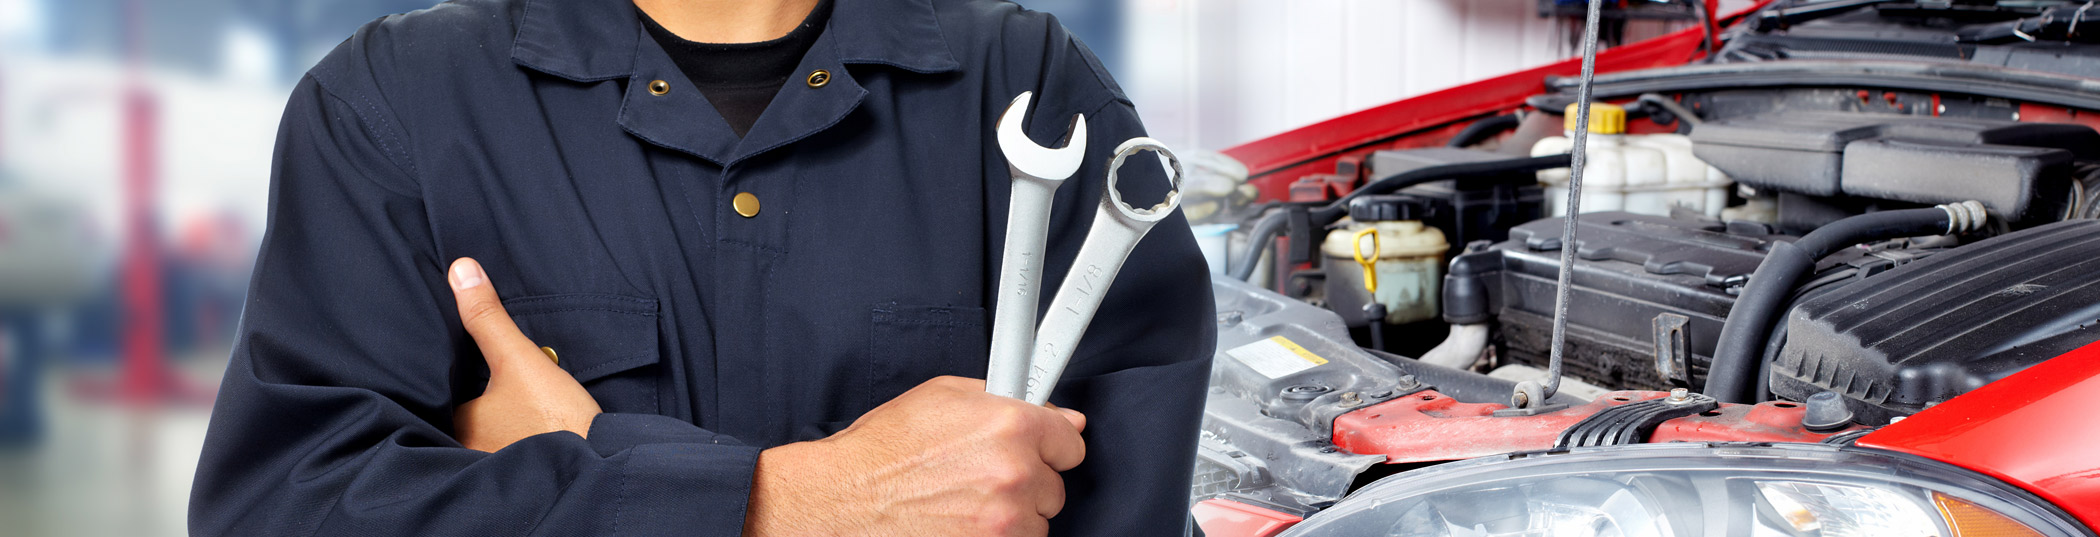 Auto Mechanic Career Opportunities